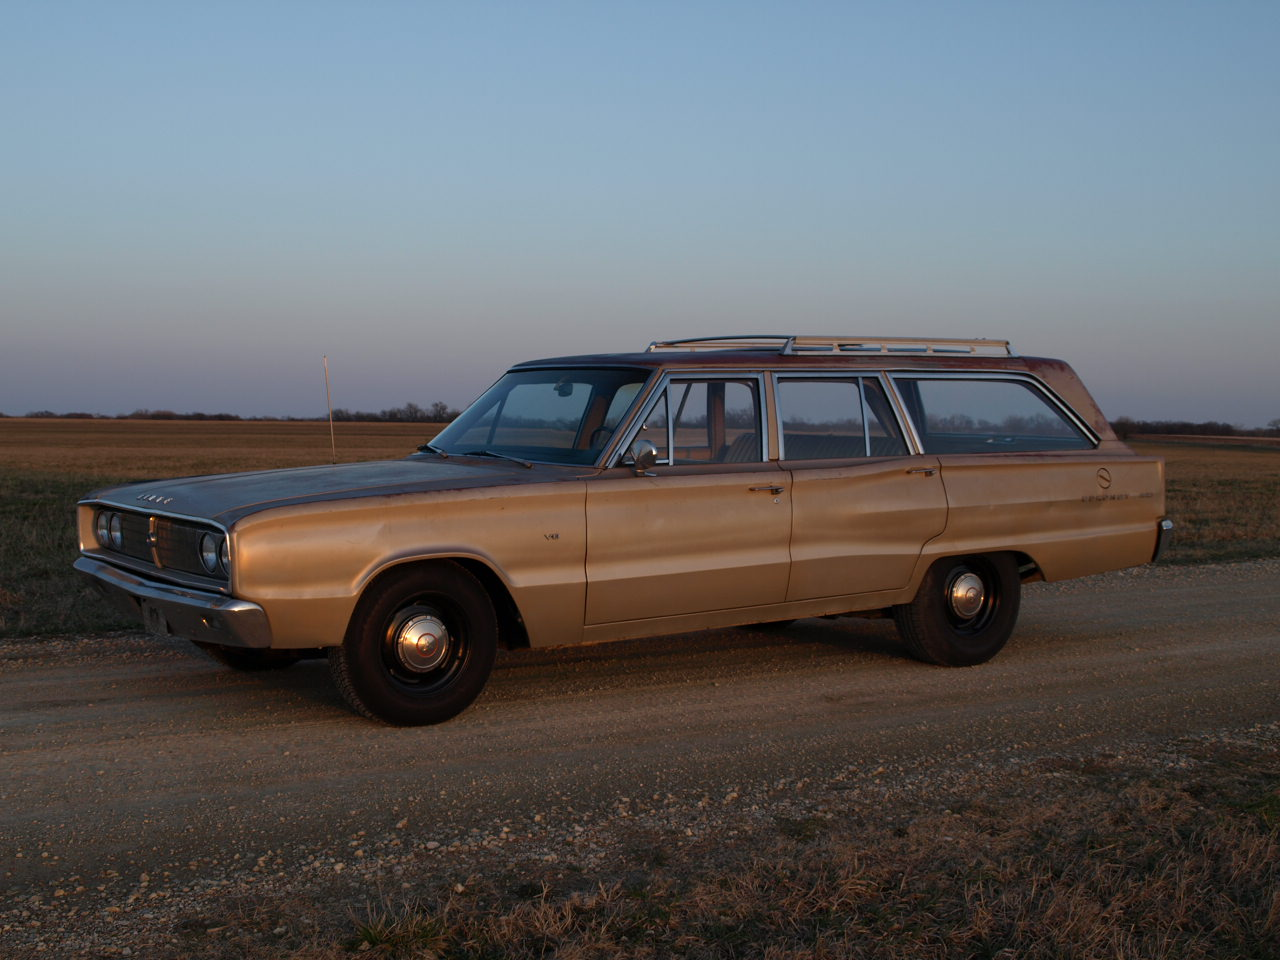 Nationwide Craigslist Search >> american-find: 1967 Dodge Coronet wagon 440 $5800